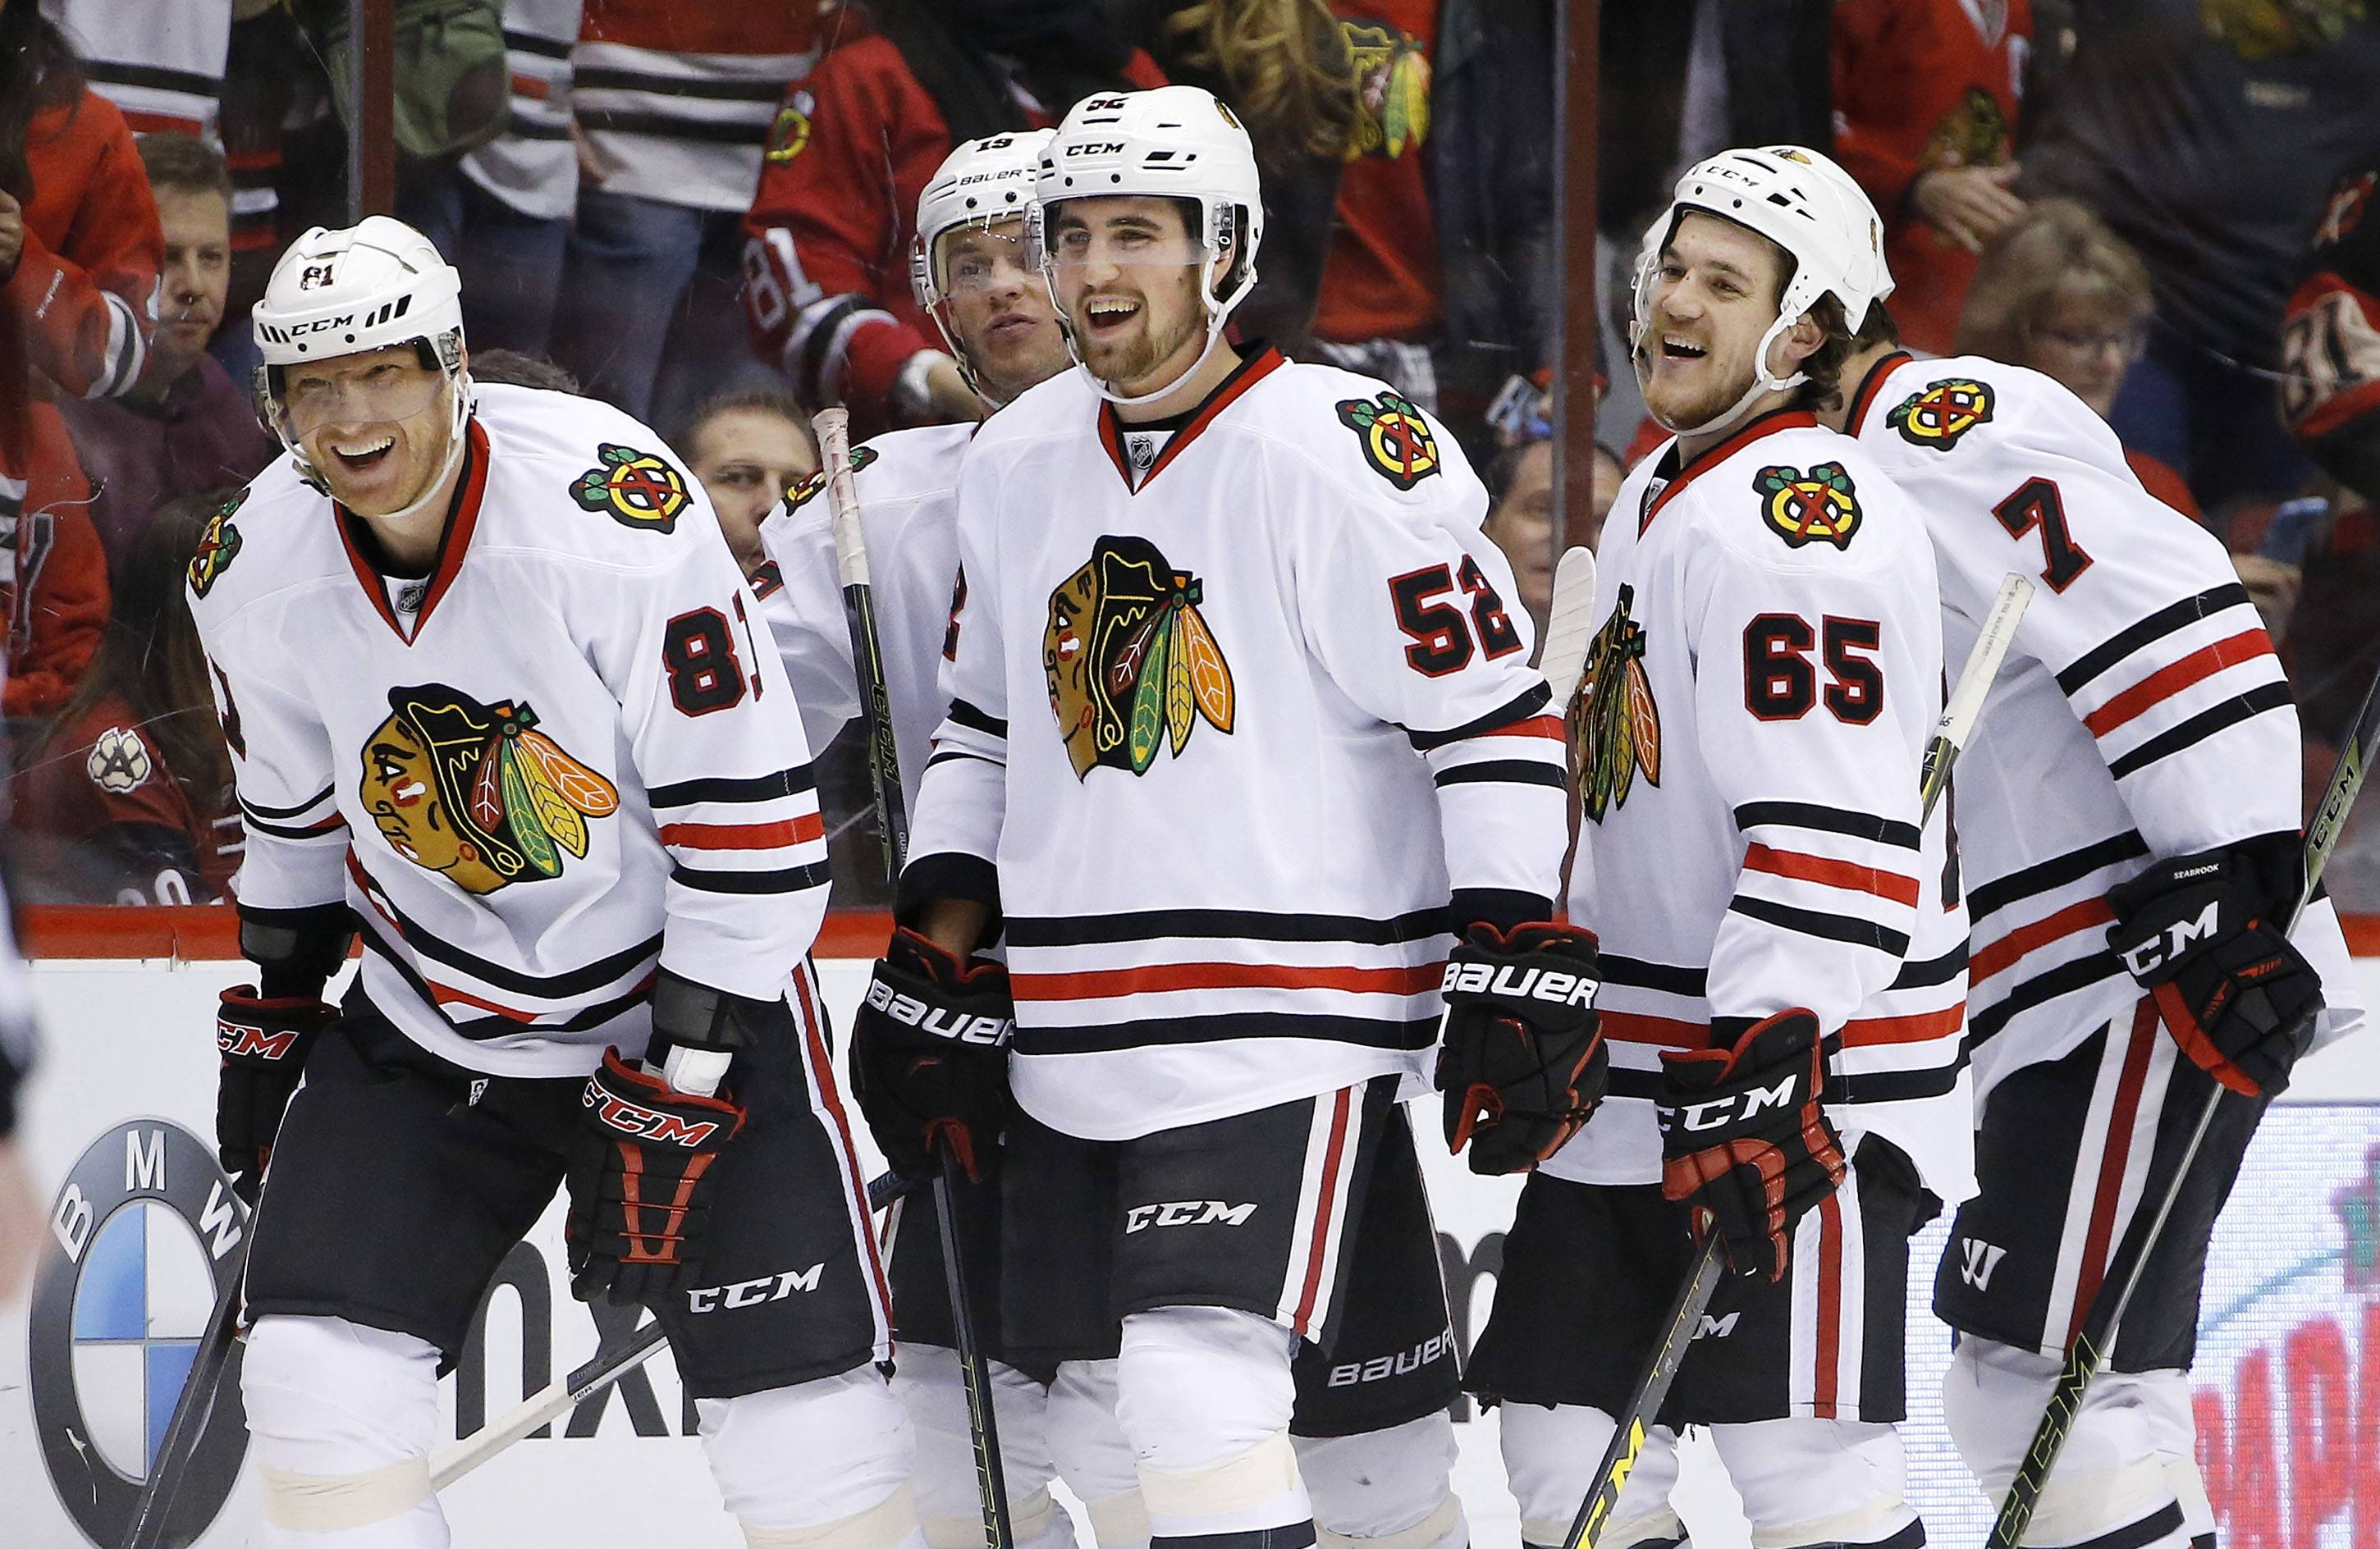 Chicago Blackhawks' Marian Hossa (81), of the Czech Republic, smiles as he celebrates his goal against the Arizona Coyotes with teammates Erik Gustafsson (52), of Sweden, Andrew Shaw (65), Brent Seabrook (7) and Jonathan Toews during the second period of an NHL hockey game Thursday, Feb. 4, 2016, in Glendale, Ariz. (AP Photo/Ross D. Franklin)